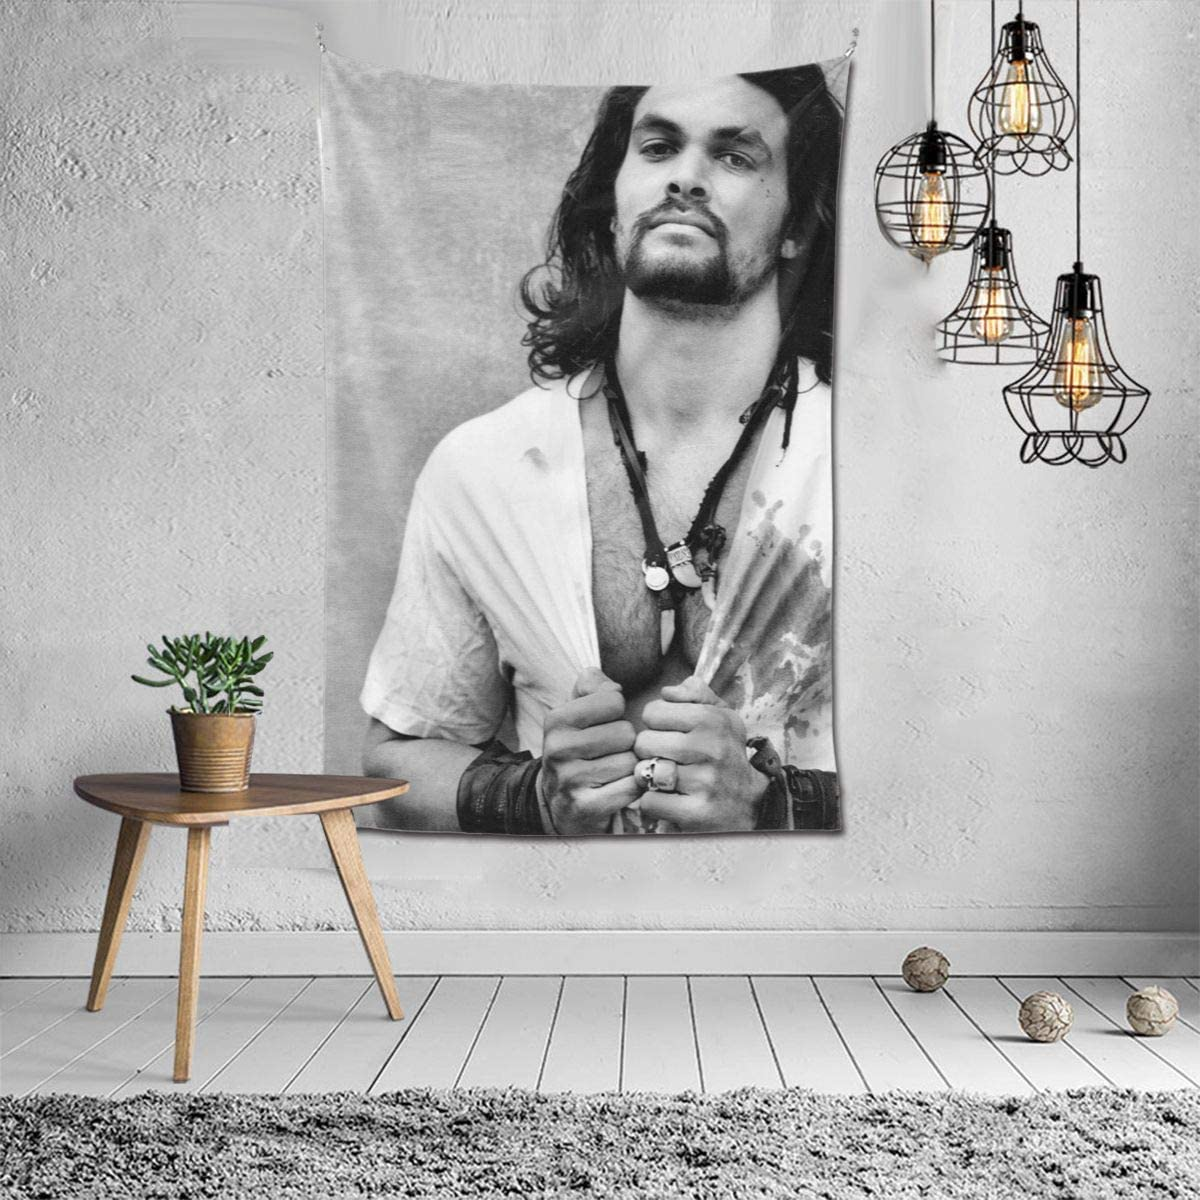 Jason Momoa Tapestry Wall Hanging Tapestry Home Decor Tapestries Wall Art for Living Room Bedroom 60x40In